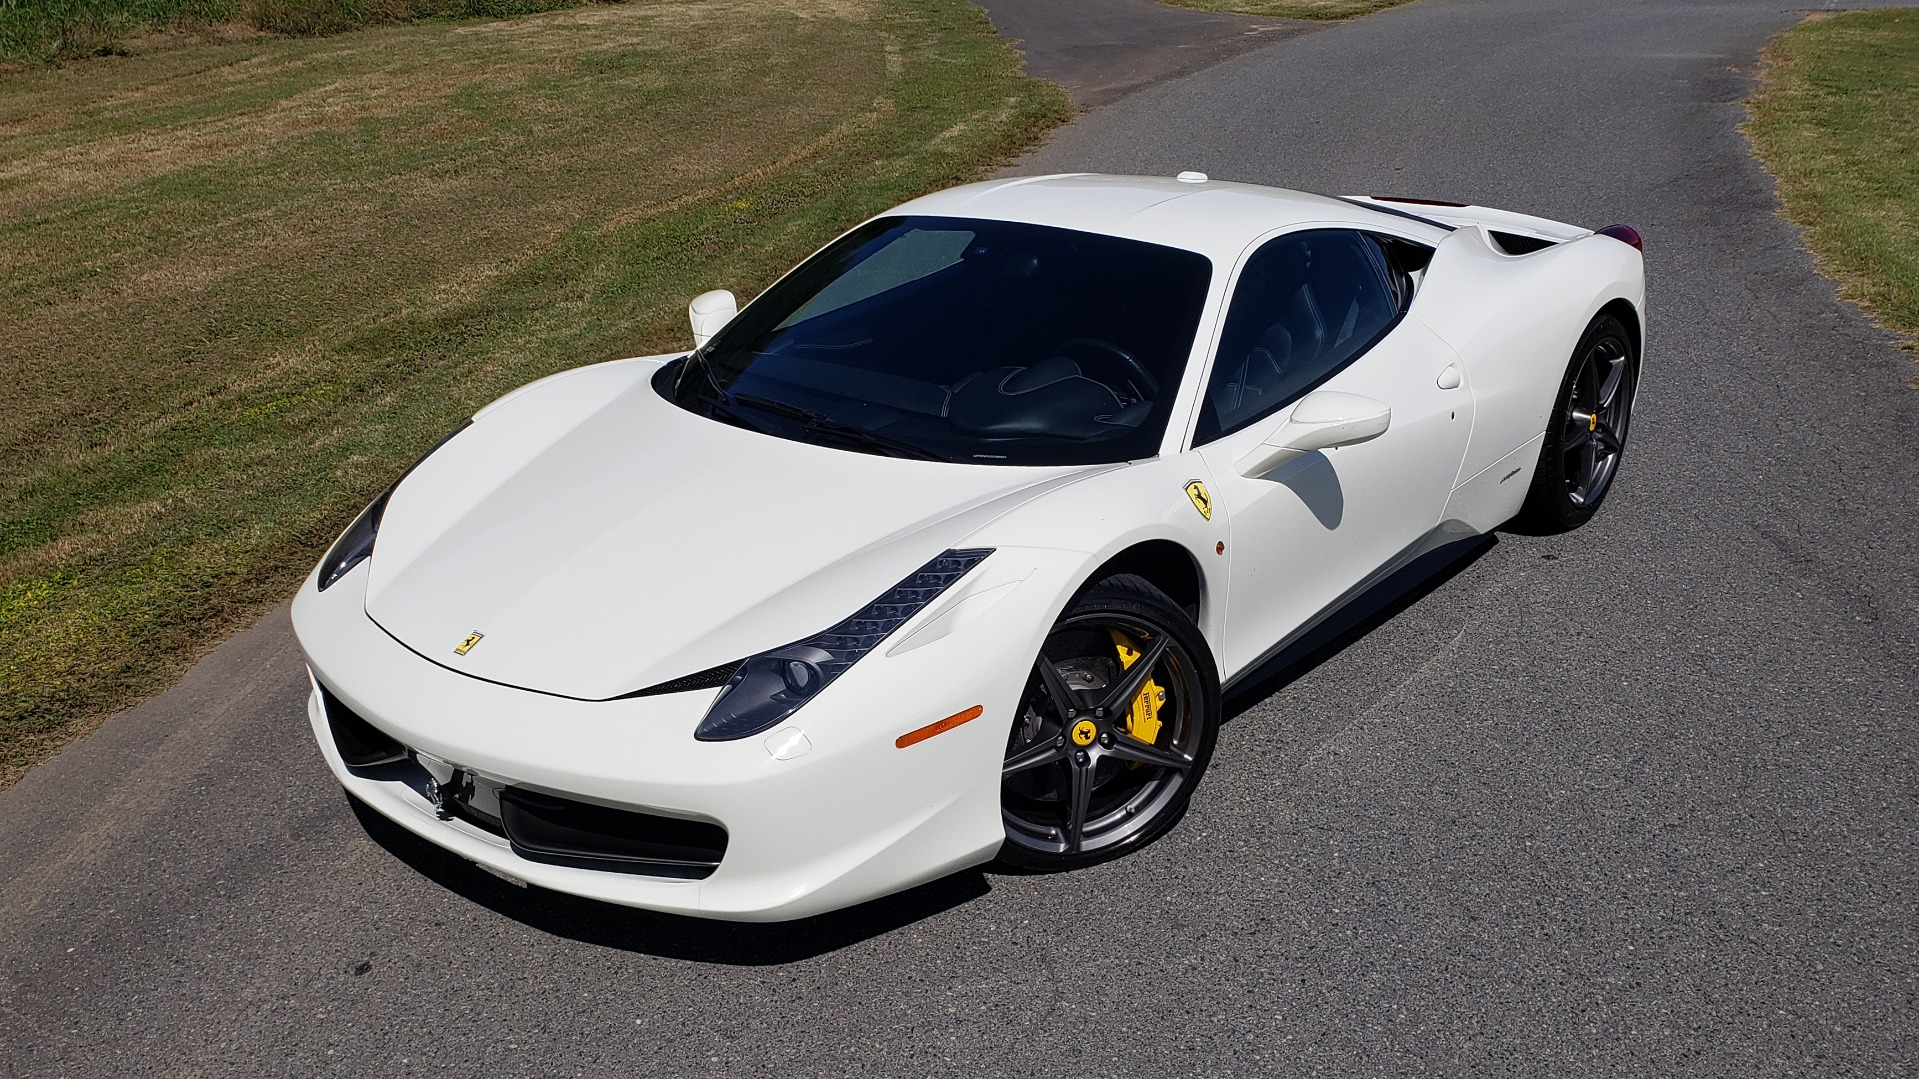 Used 2012 Ferrari 458 ITALIA COUPE / 4.5L V8 / 7-SPEED AUTO / LOW MILES SUPER CLEAN for sale $169,999 at Formula Imports in Charlotte NC 28227 5